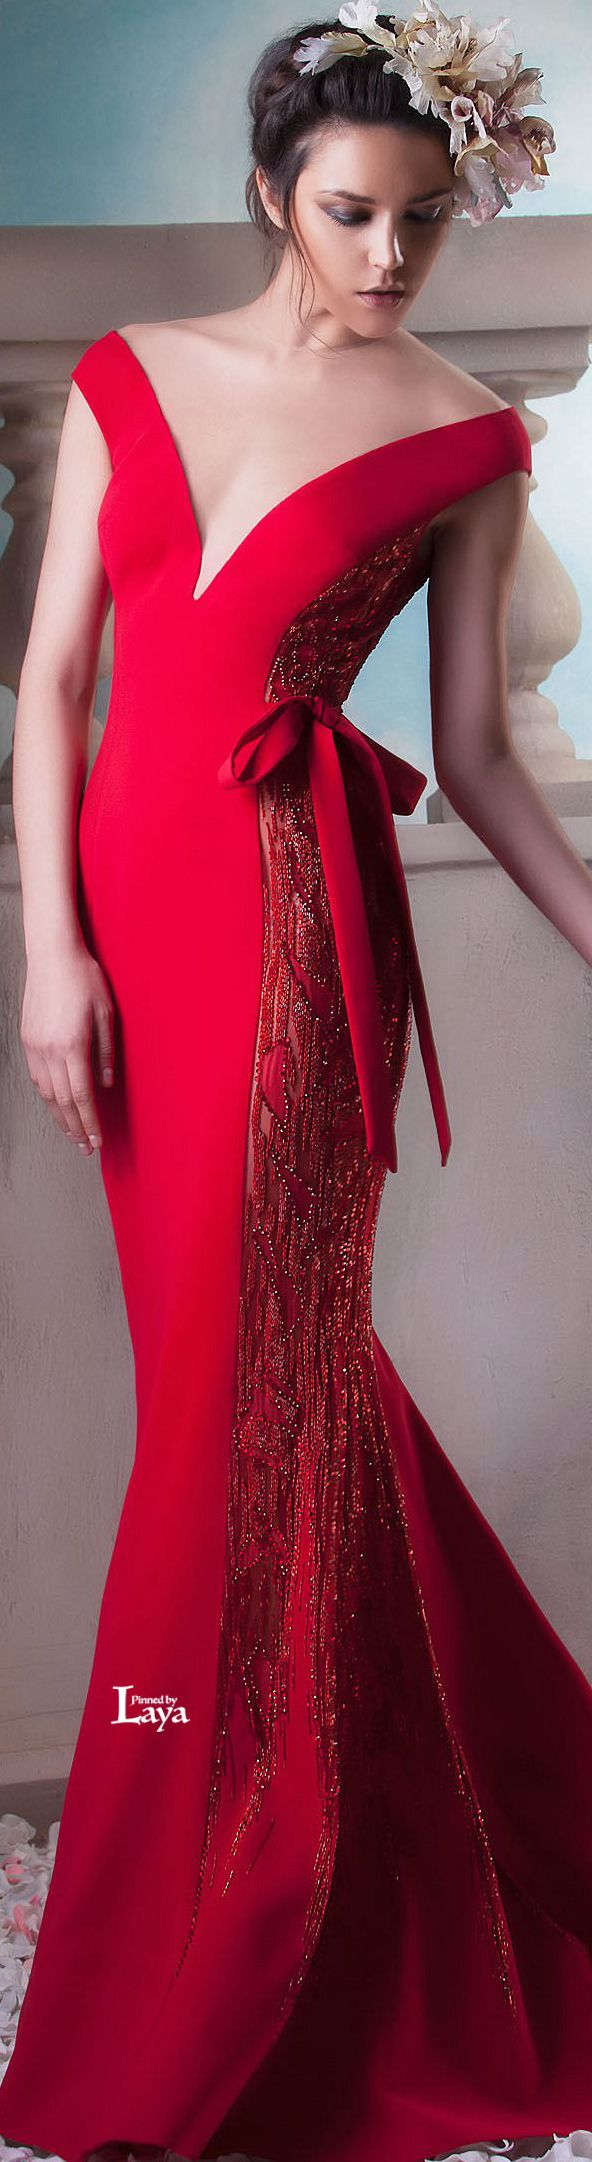 Hanna Touma ~ Couture Summer Red Plunging V Neckline Gown 2015